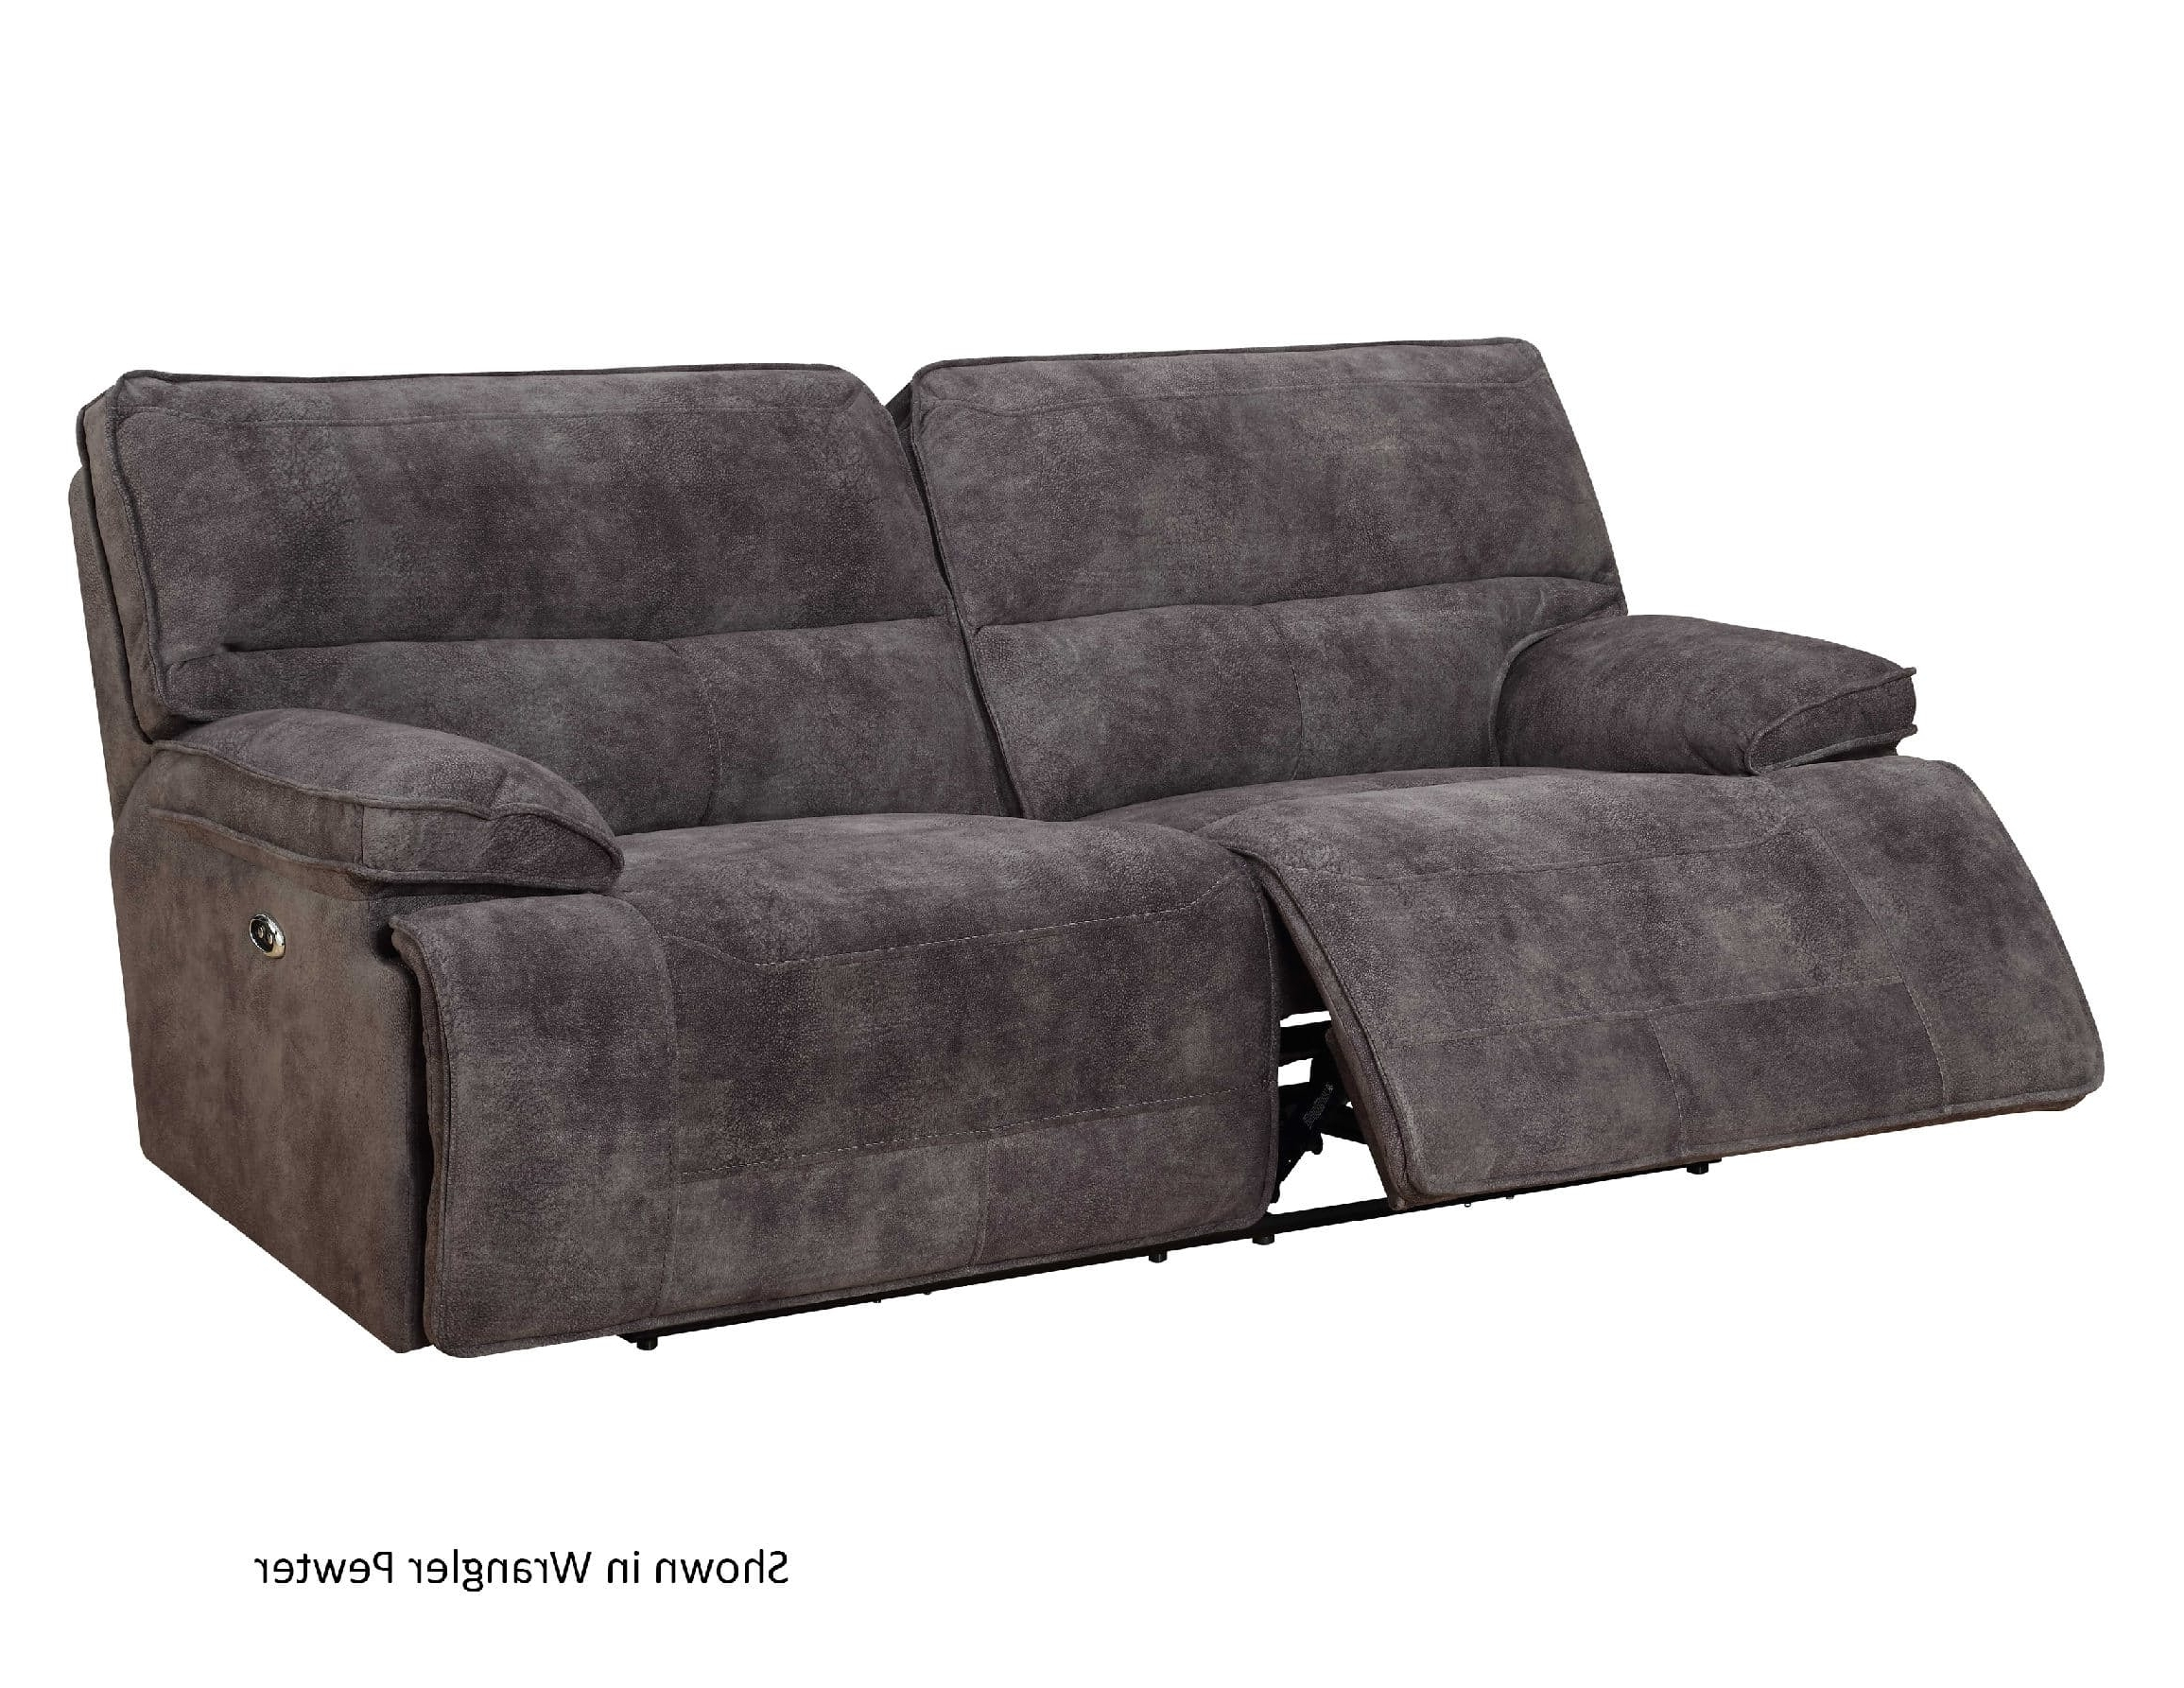 Widely Used Recliner Sofas In Paris Power Dual Reclining Sofa And Dual Reclining Love Seat With (View 13 of 17)